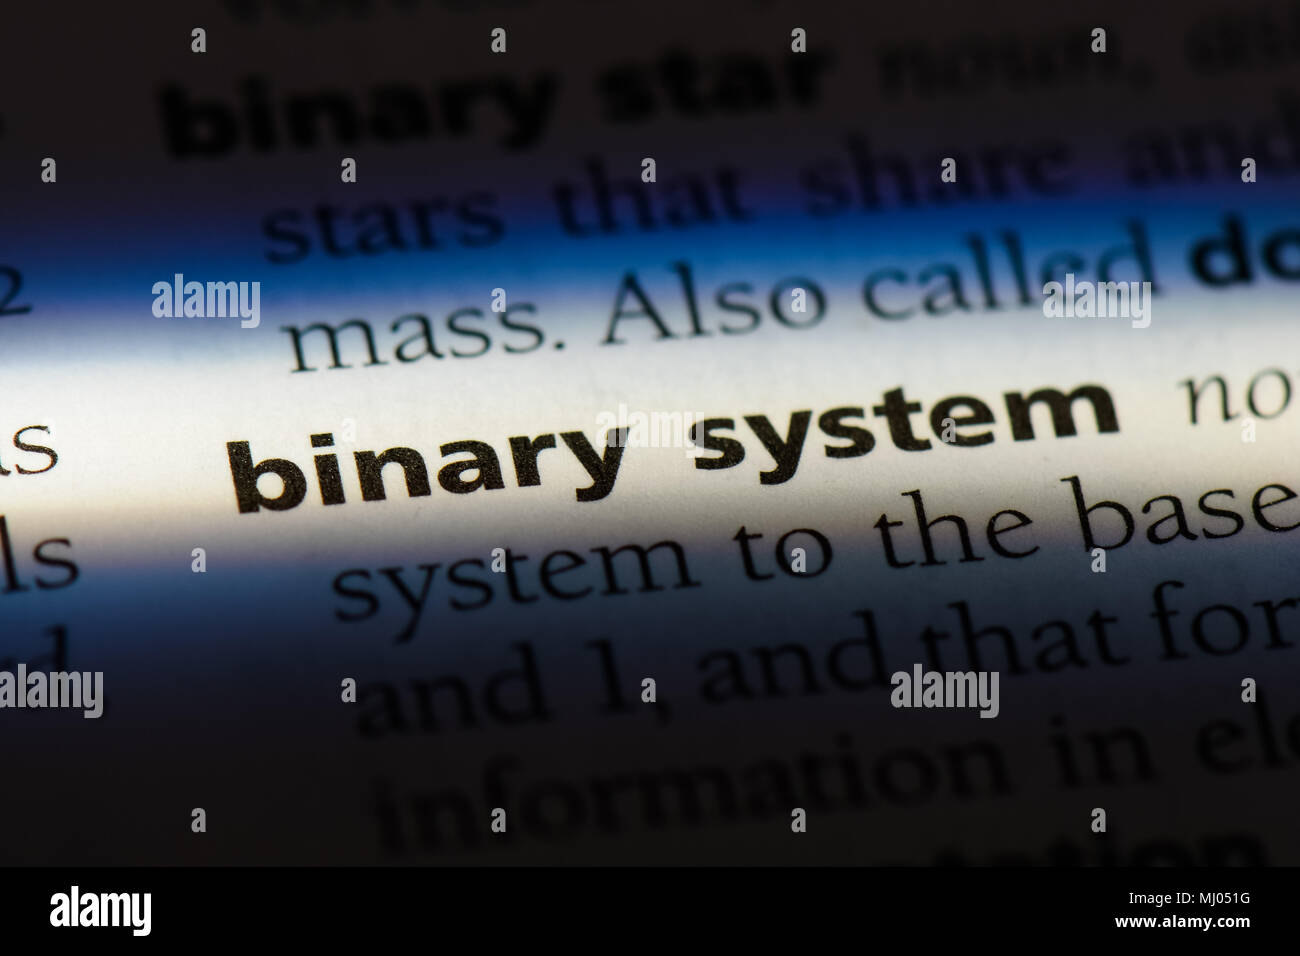 binary system word in a dictionary. binary system concept. - Stock Image